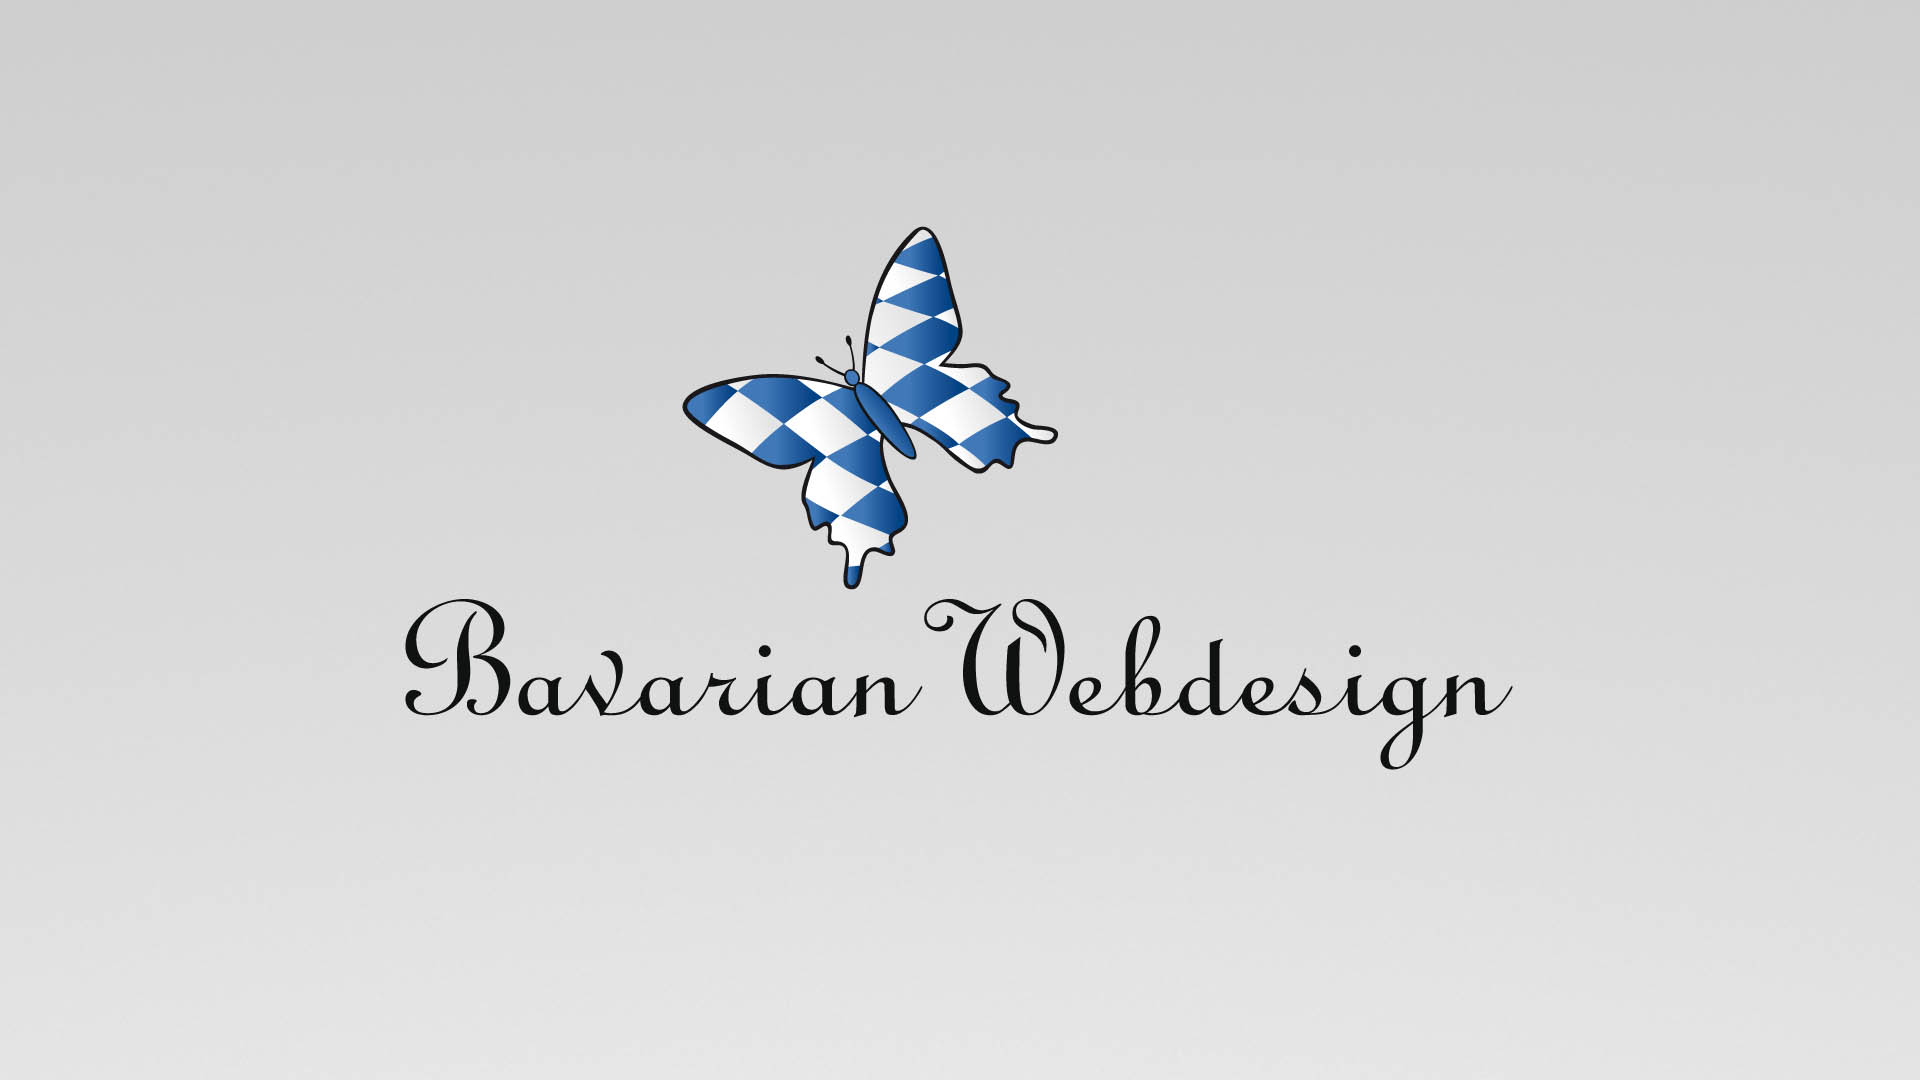 Logo bavarian webdesign HD